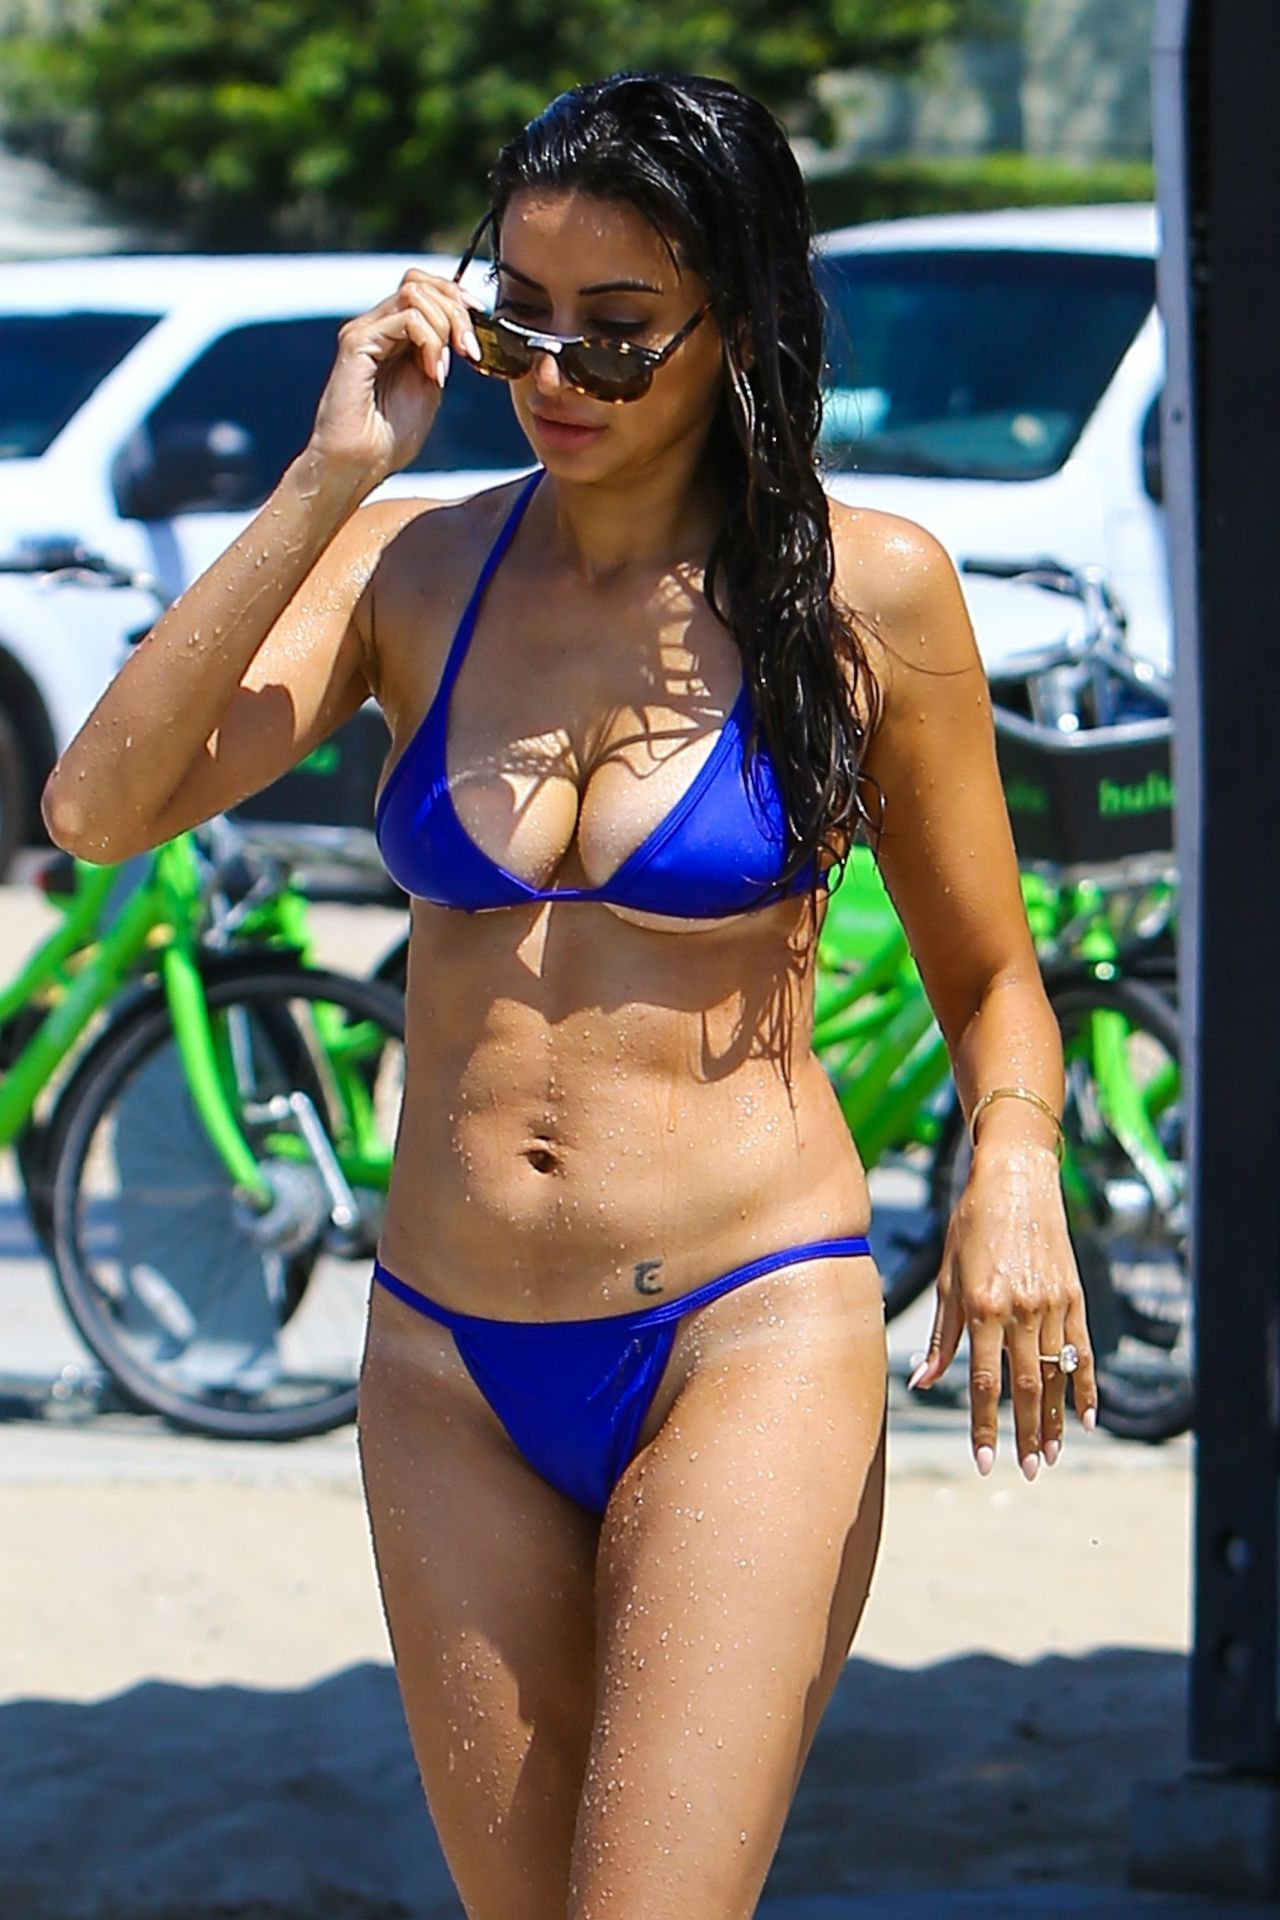 2019 Noureen DeWulf naked (89 photos), Tits, Fappening, Boobs, cameltoe 2006